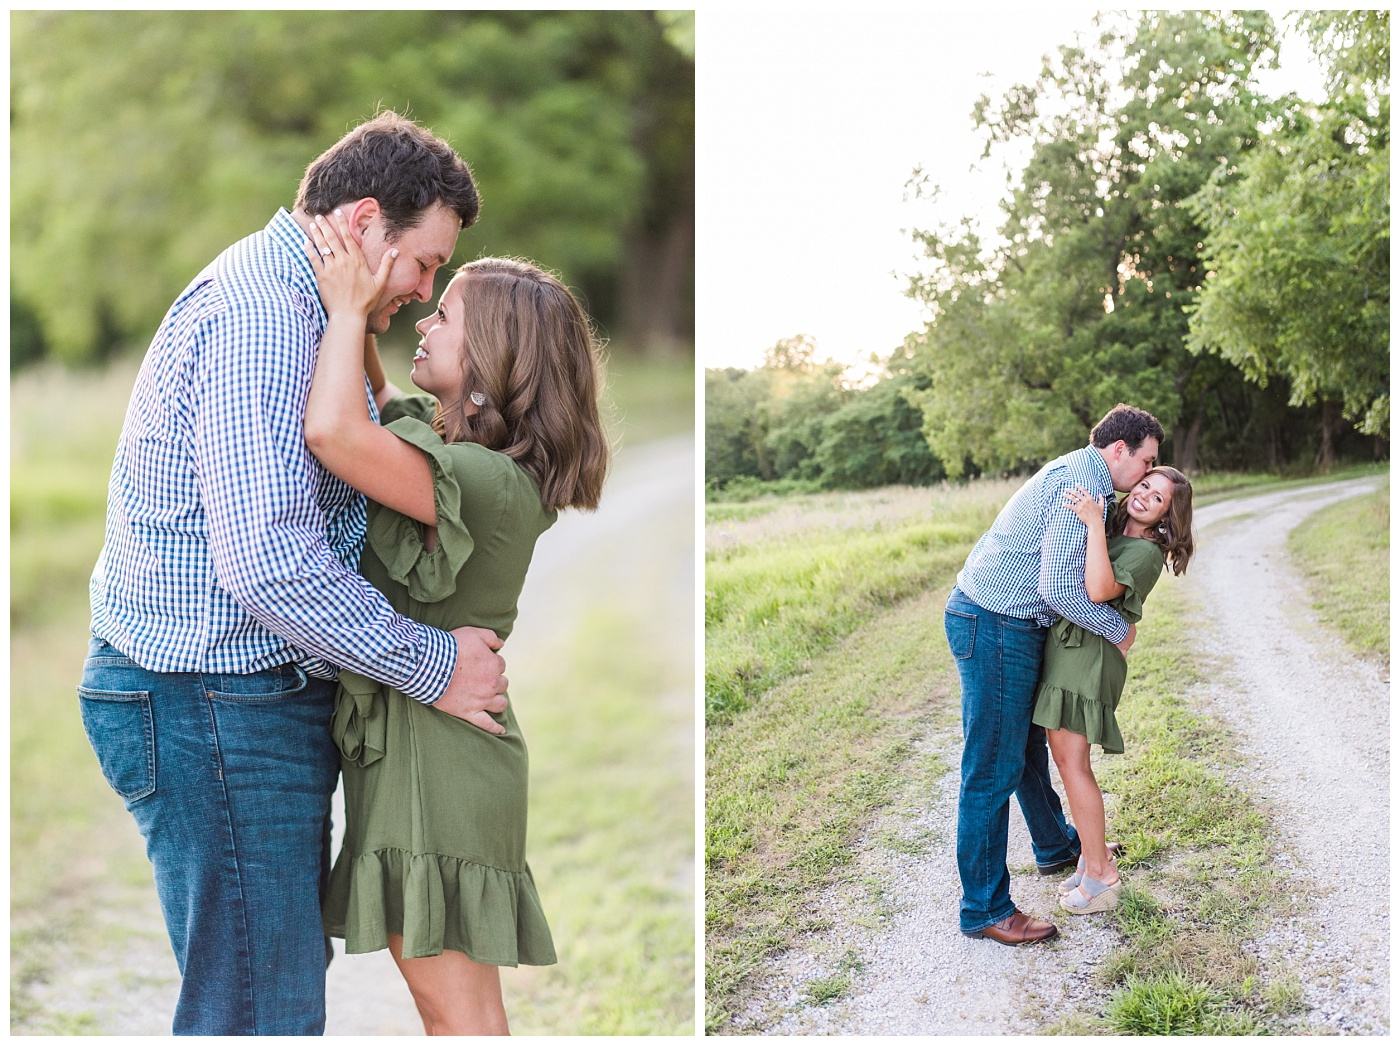 Stephanie Marie Photography Lake McBride Engagement Session Dubuque Iowa City Wedding Photographer Morgan Lucas_0017-1.jpg